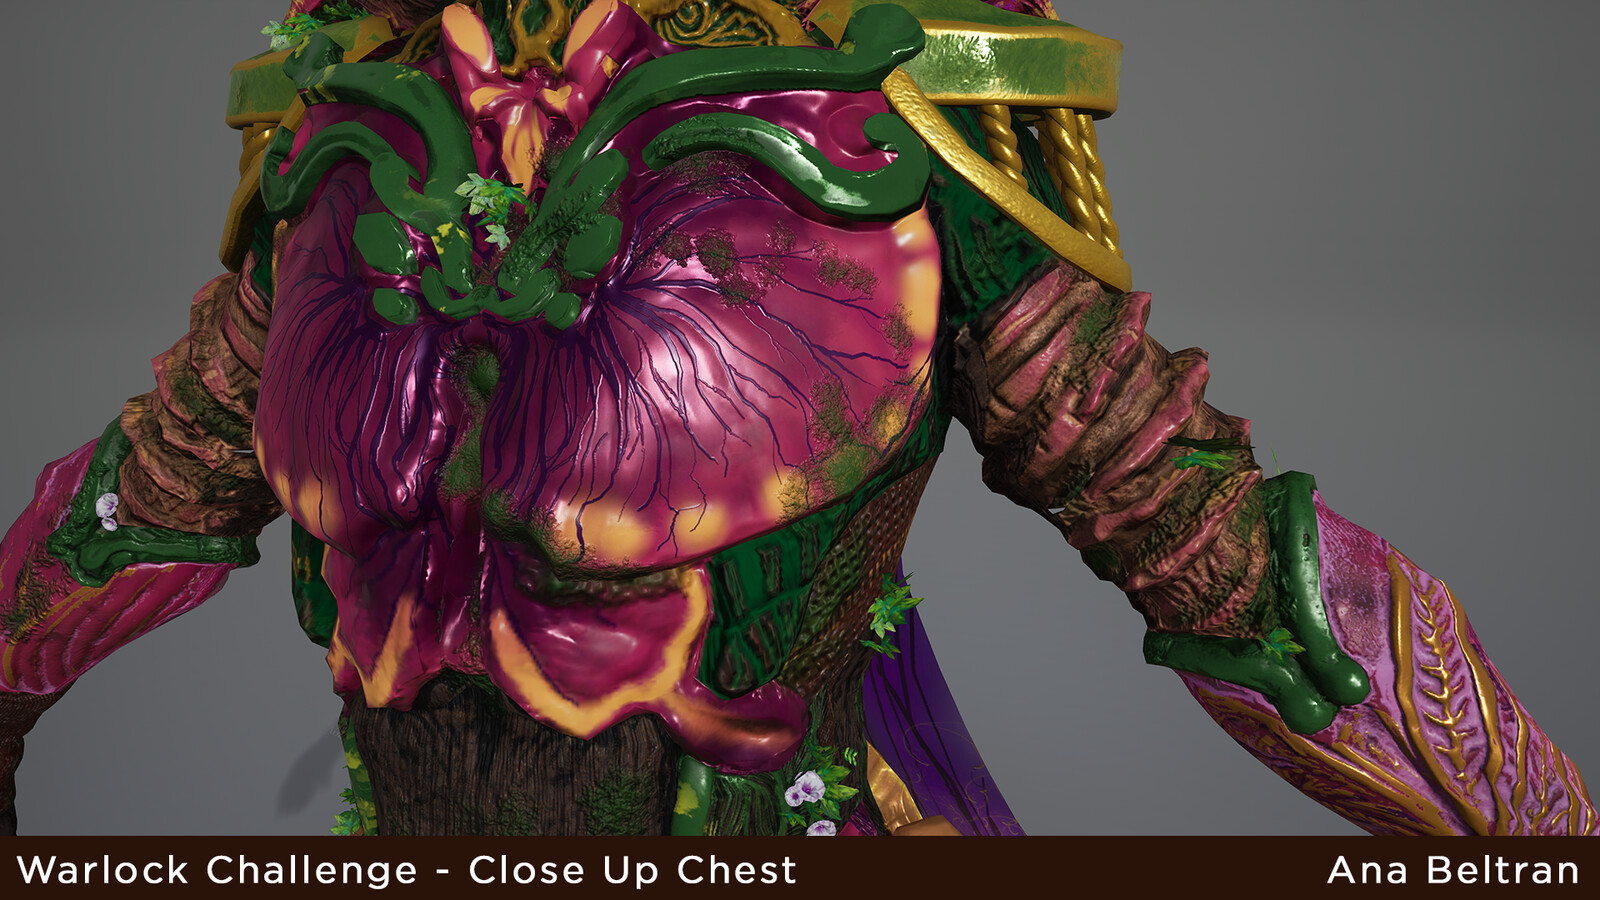 Up Close Chest rendered in Unreal